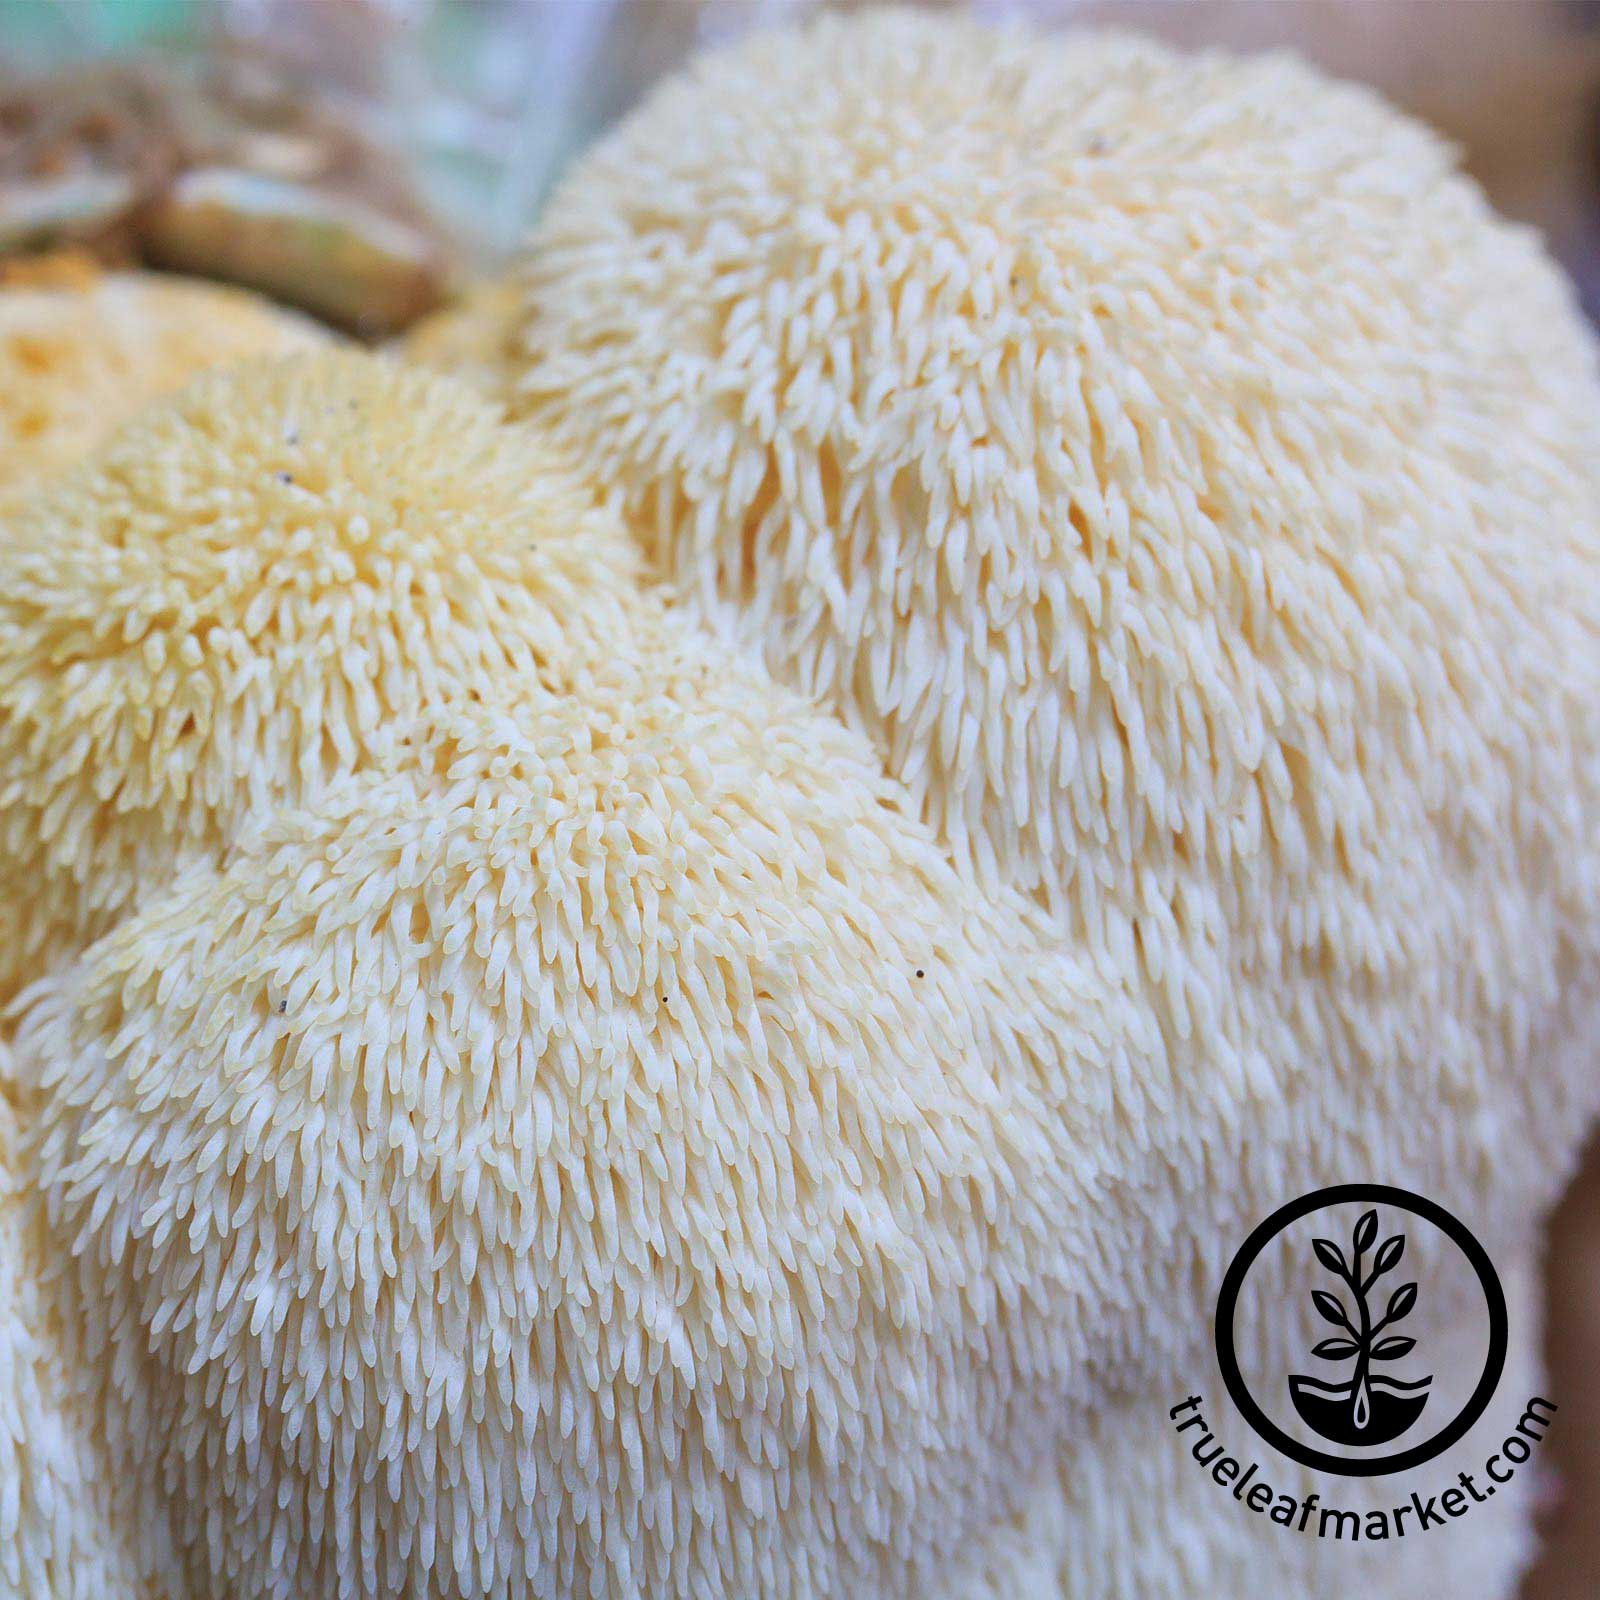 Plug Spawn - Lion's Mane Mushrooms